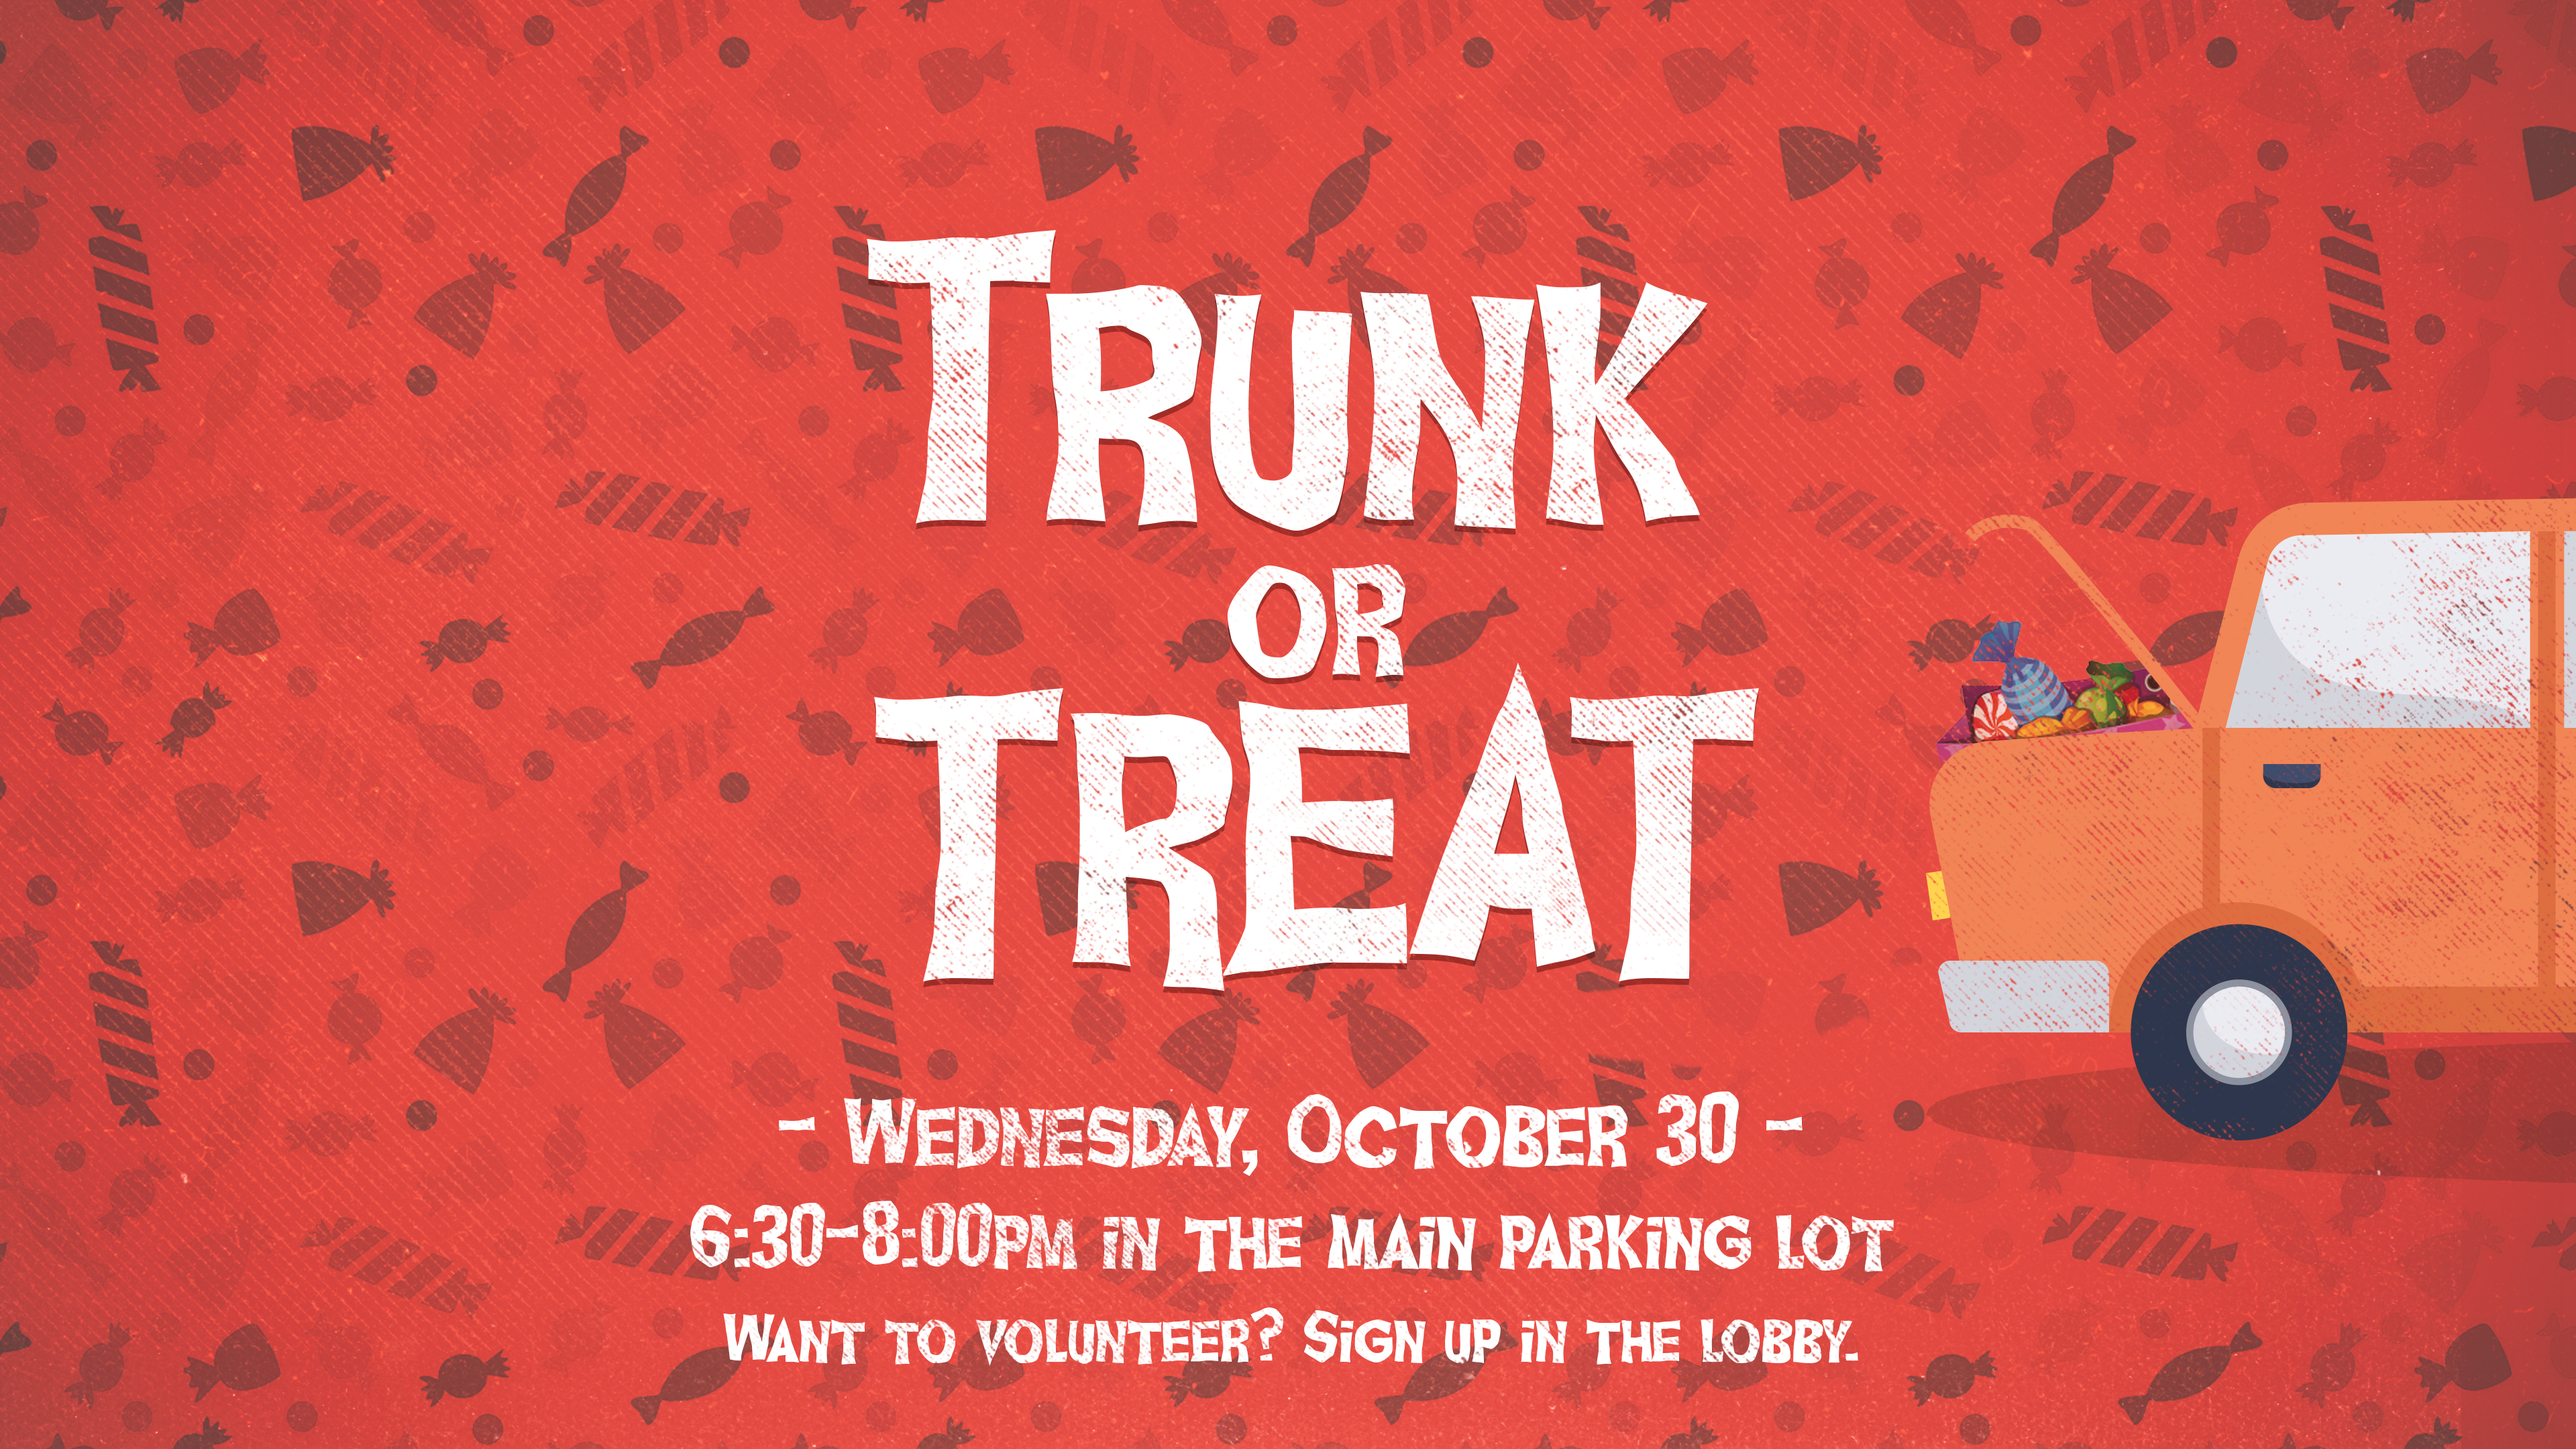 OKC | Trunk or Treat Volunteer Sign Up at Victory Church